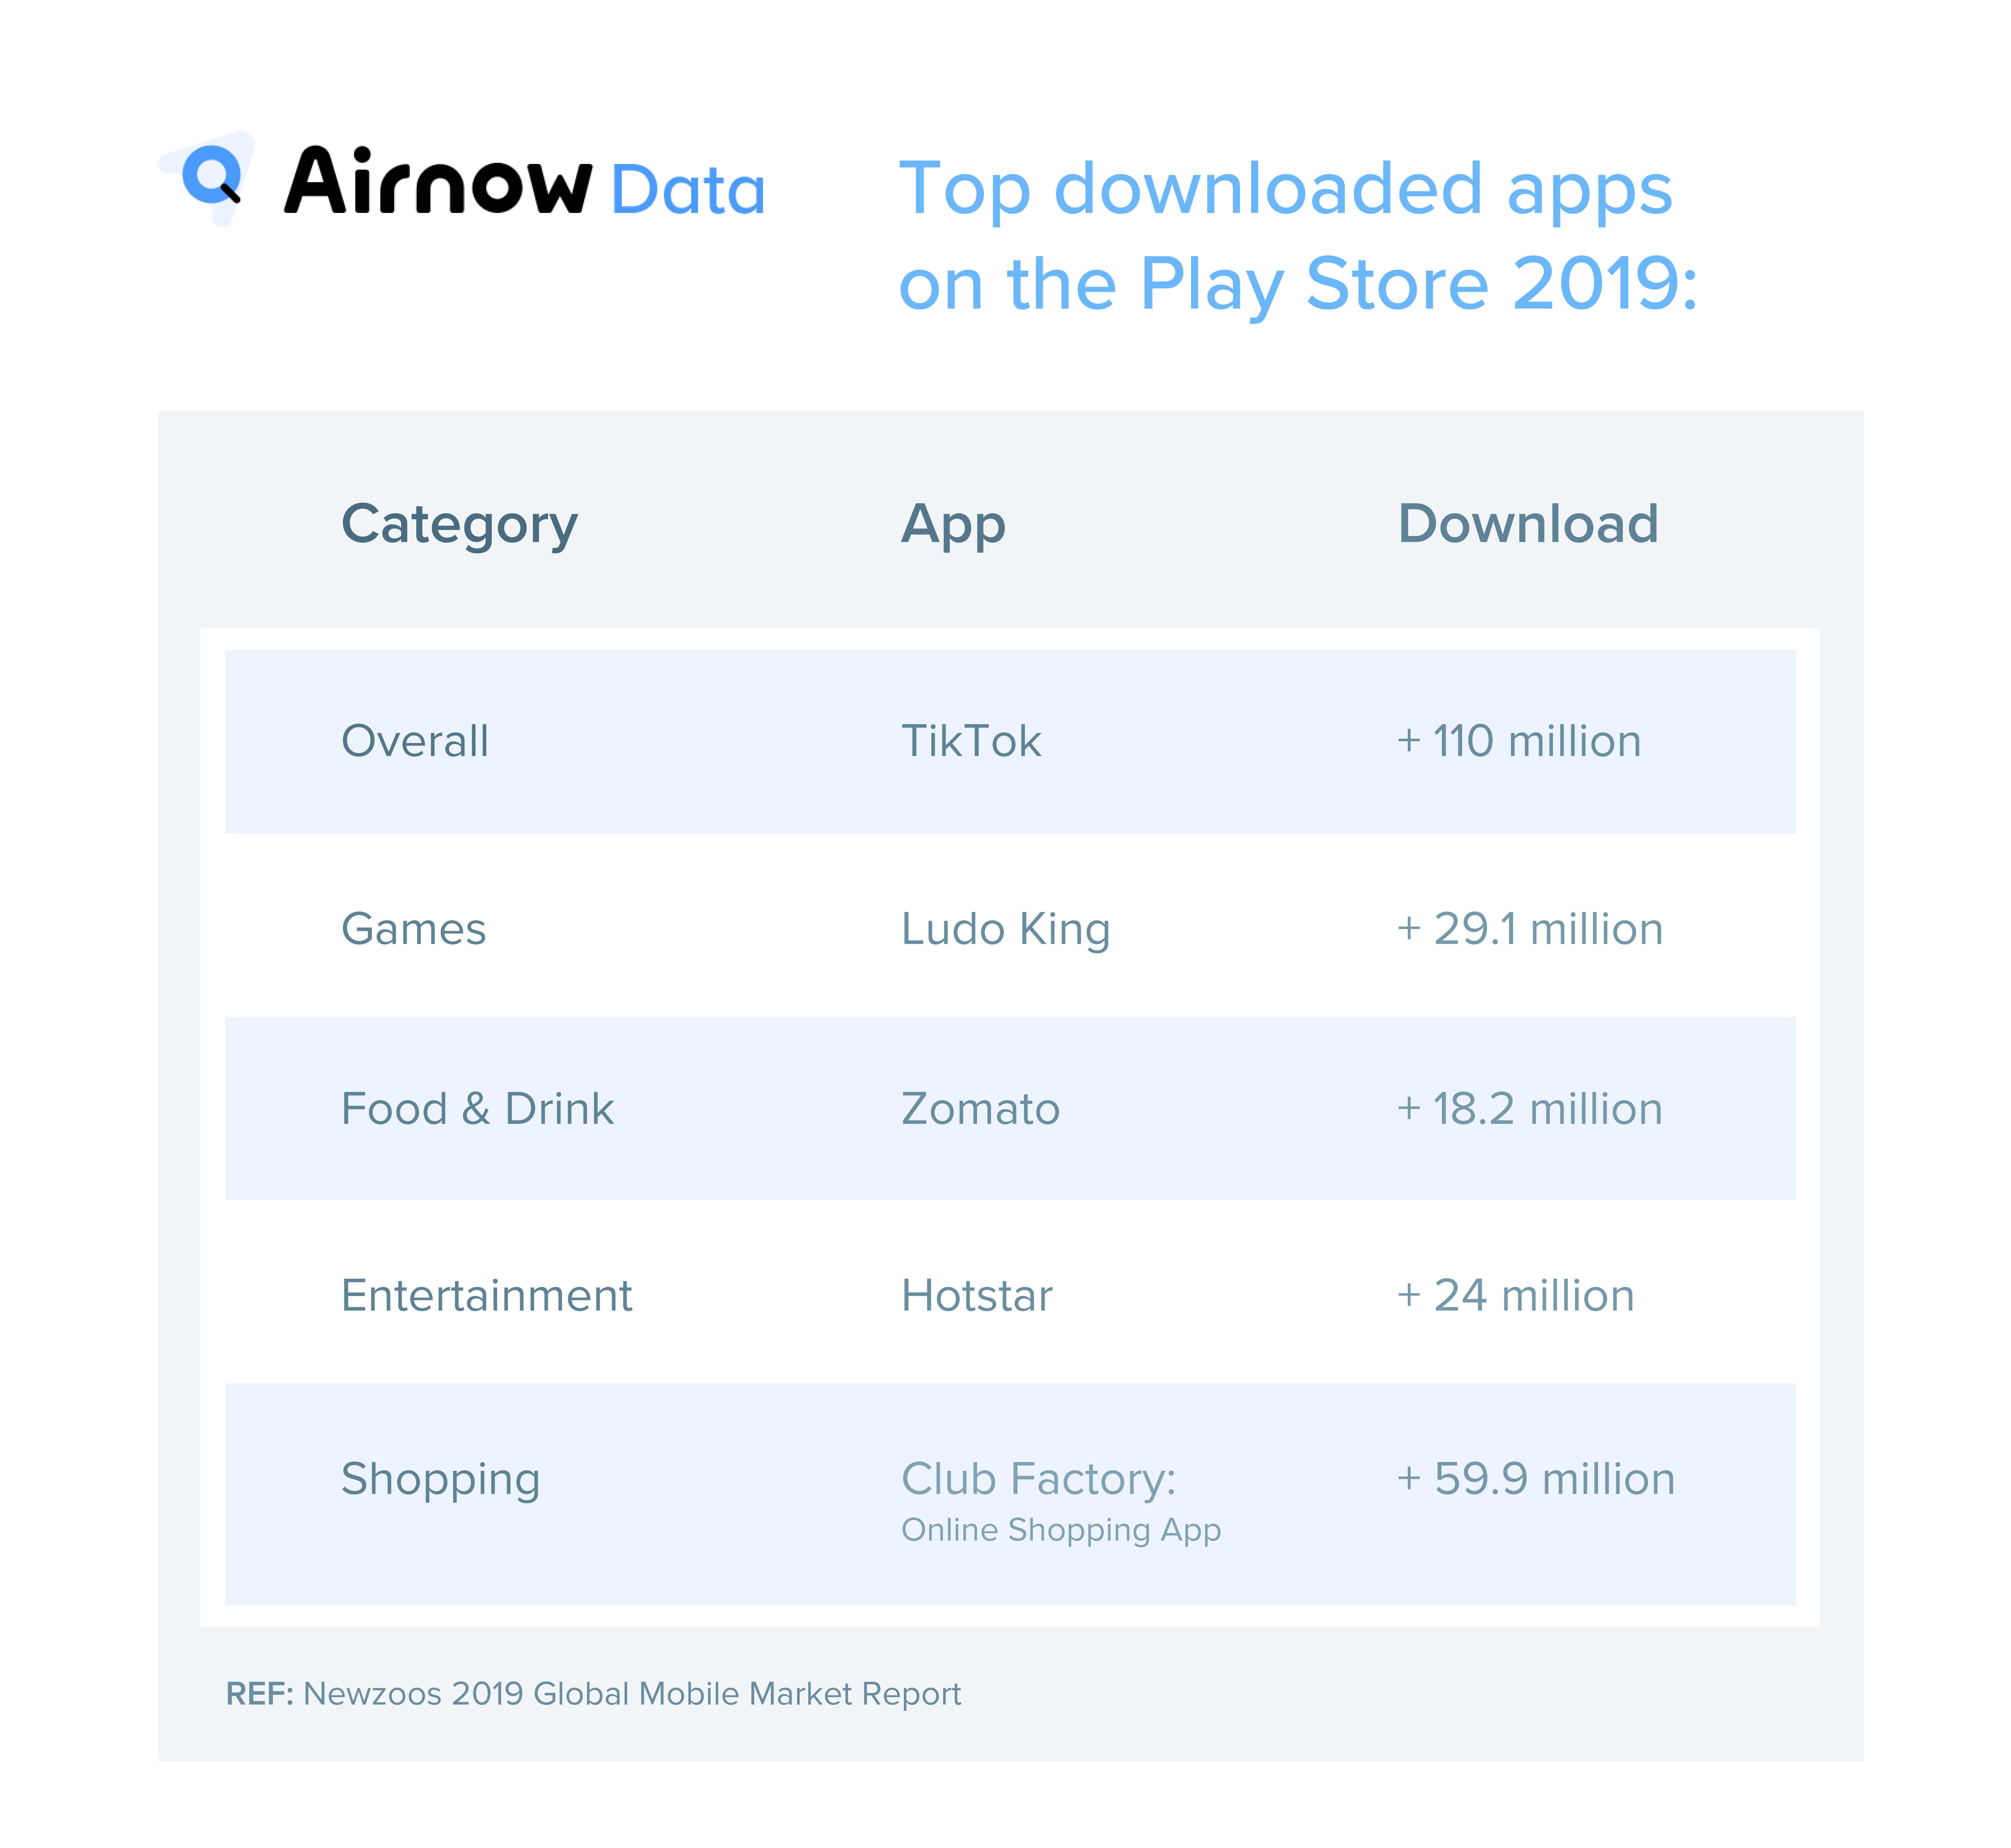 Top downloads apps on the Play Store 2019